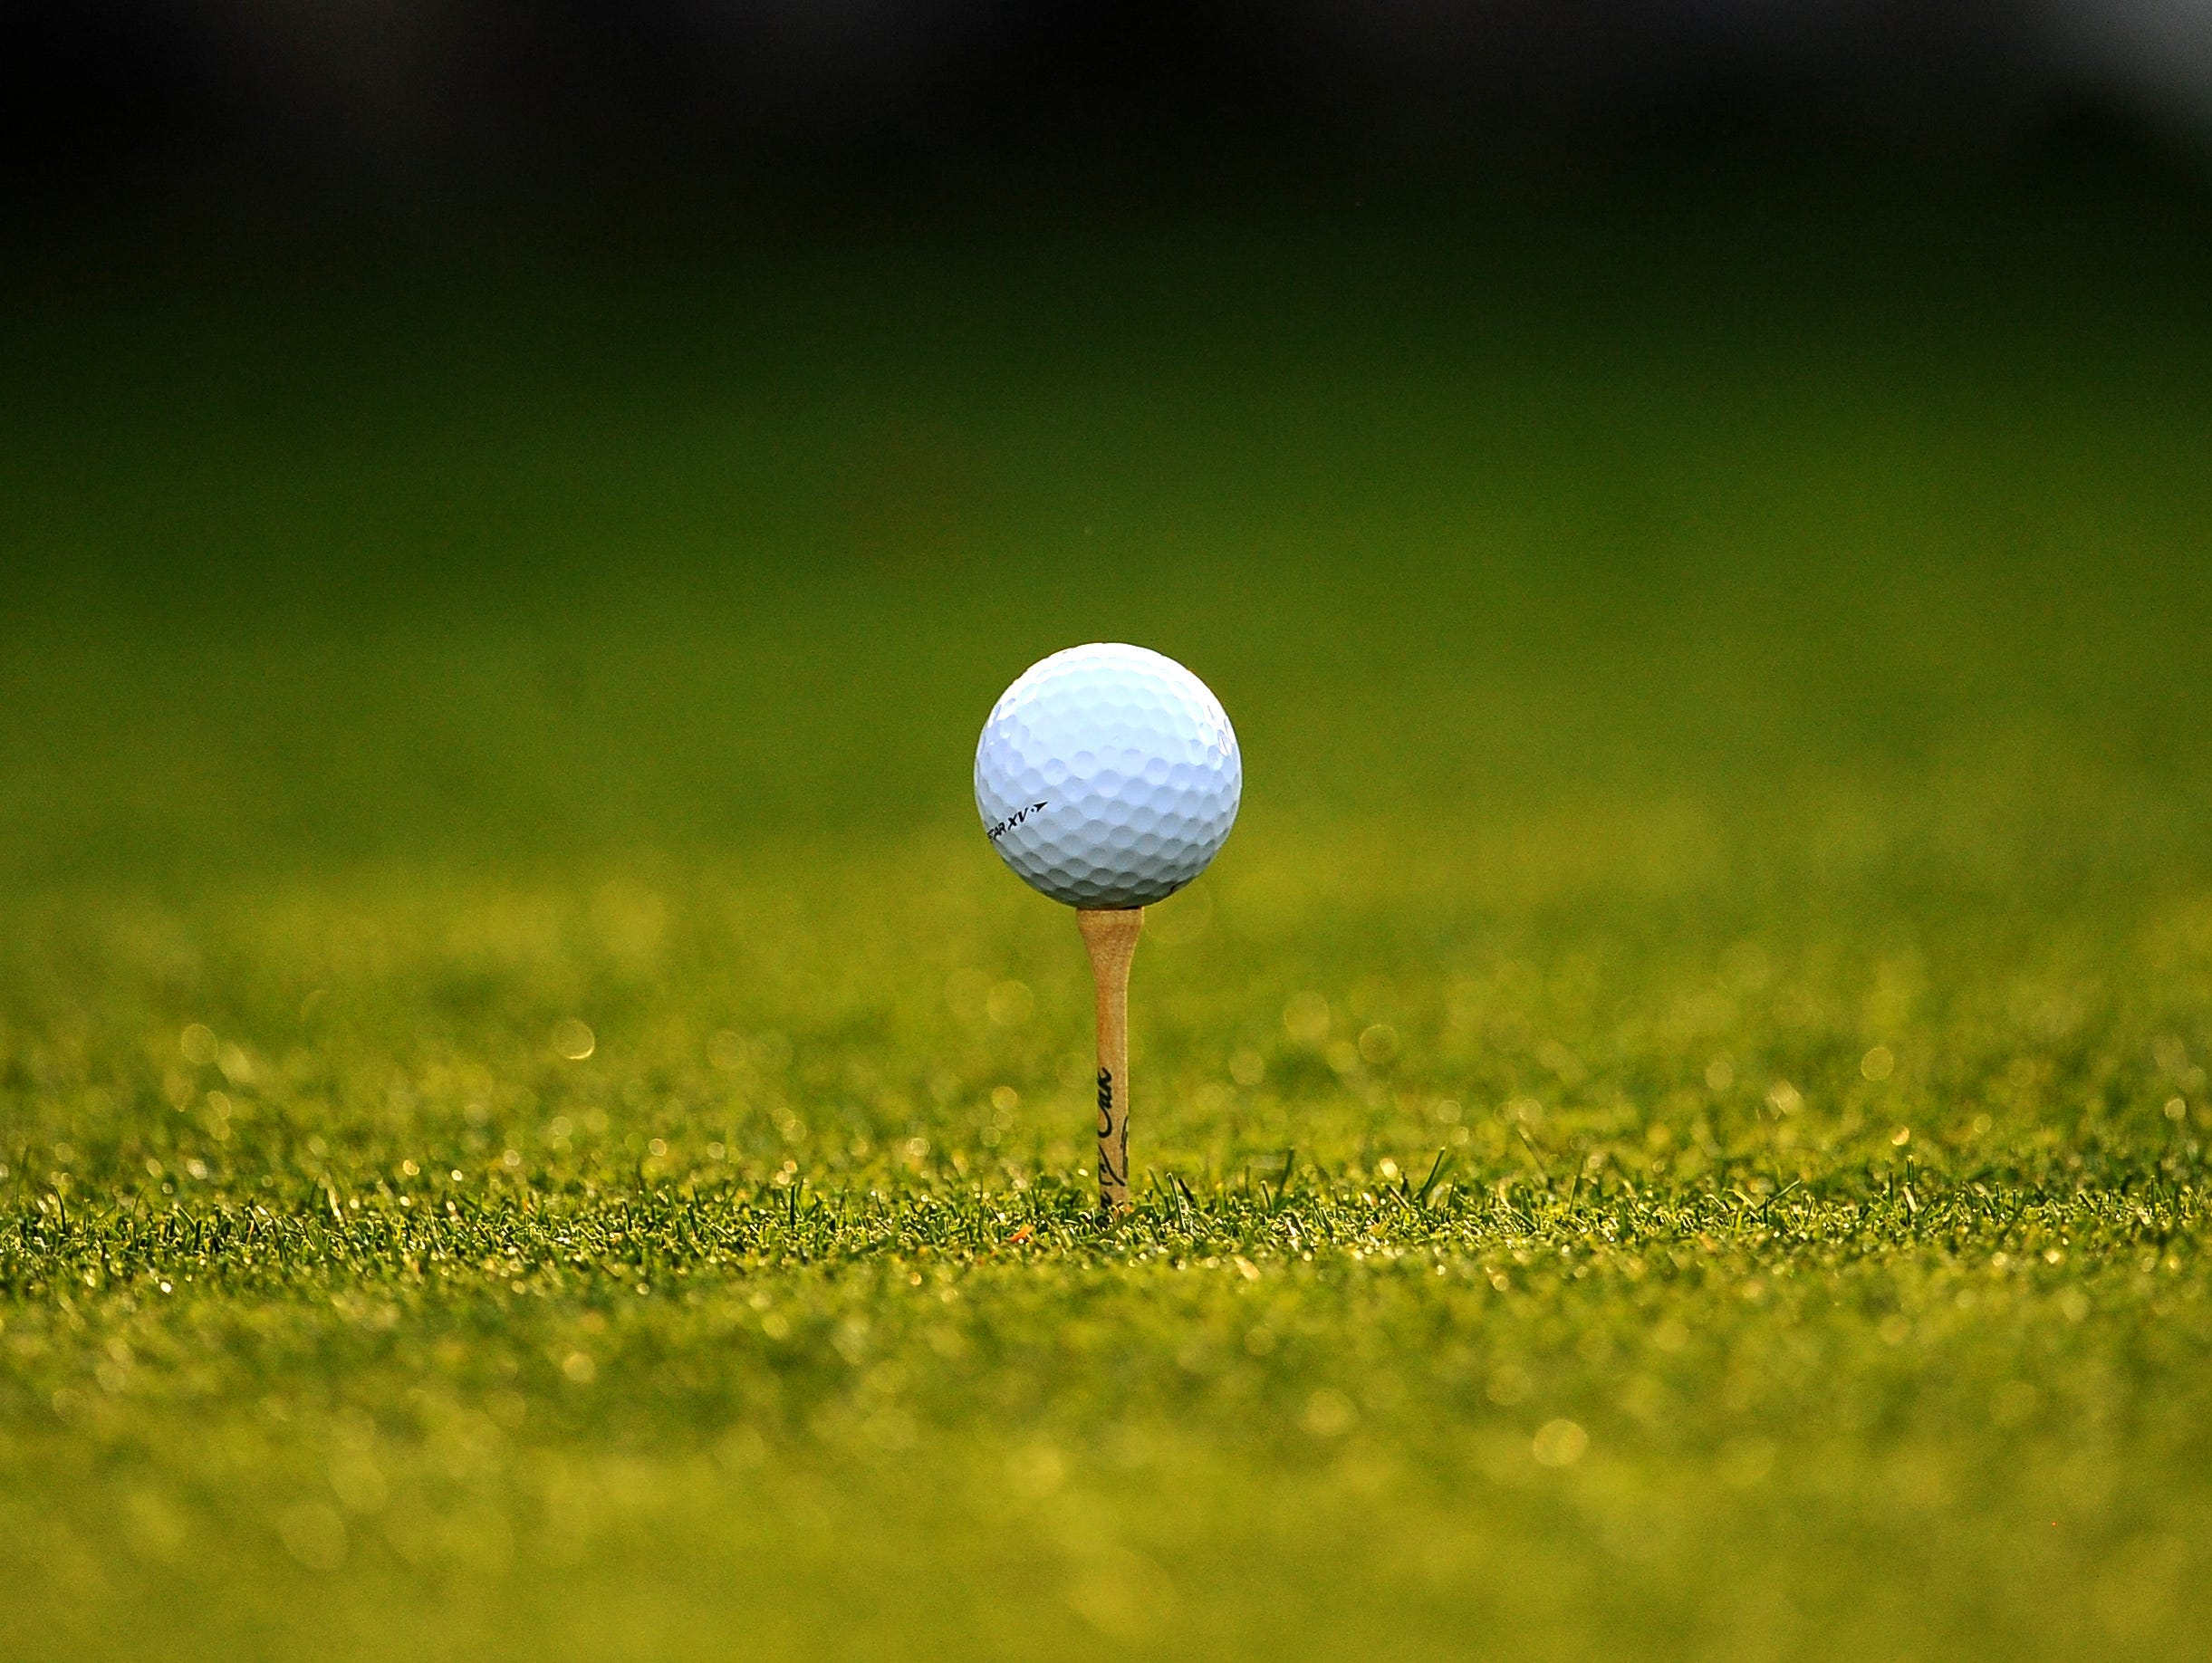 The La Quinta boys' golf team picked up a dominating 18-hole dual meet on Thursday against Amador Valley at SilverRock, winning 380-457.